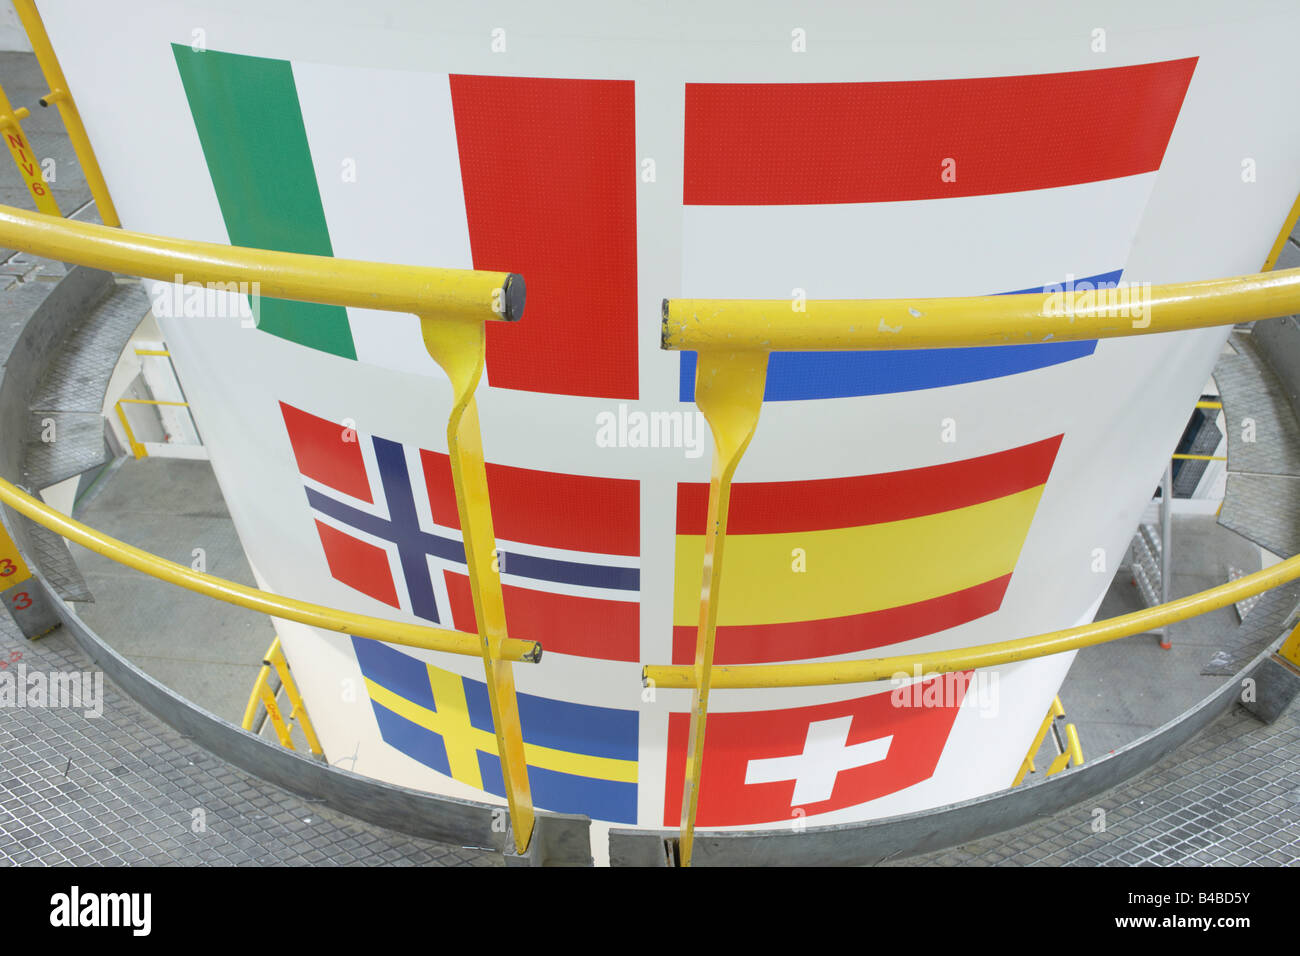 Member country flags, Ariane 5 rocket booster in Europropulsion's Booster Integration Building, European Space - Stock Image